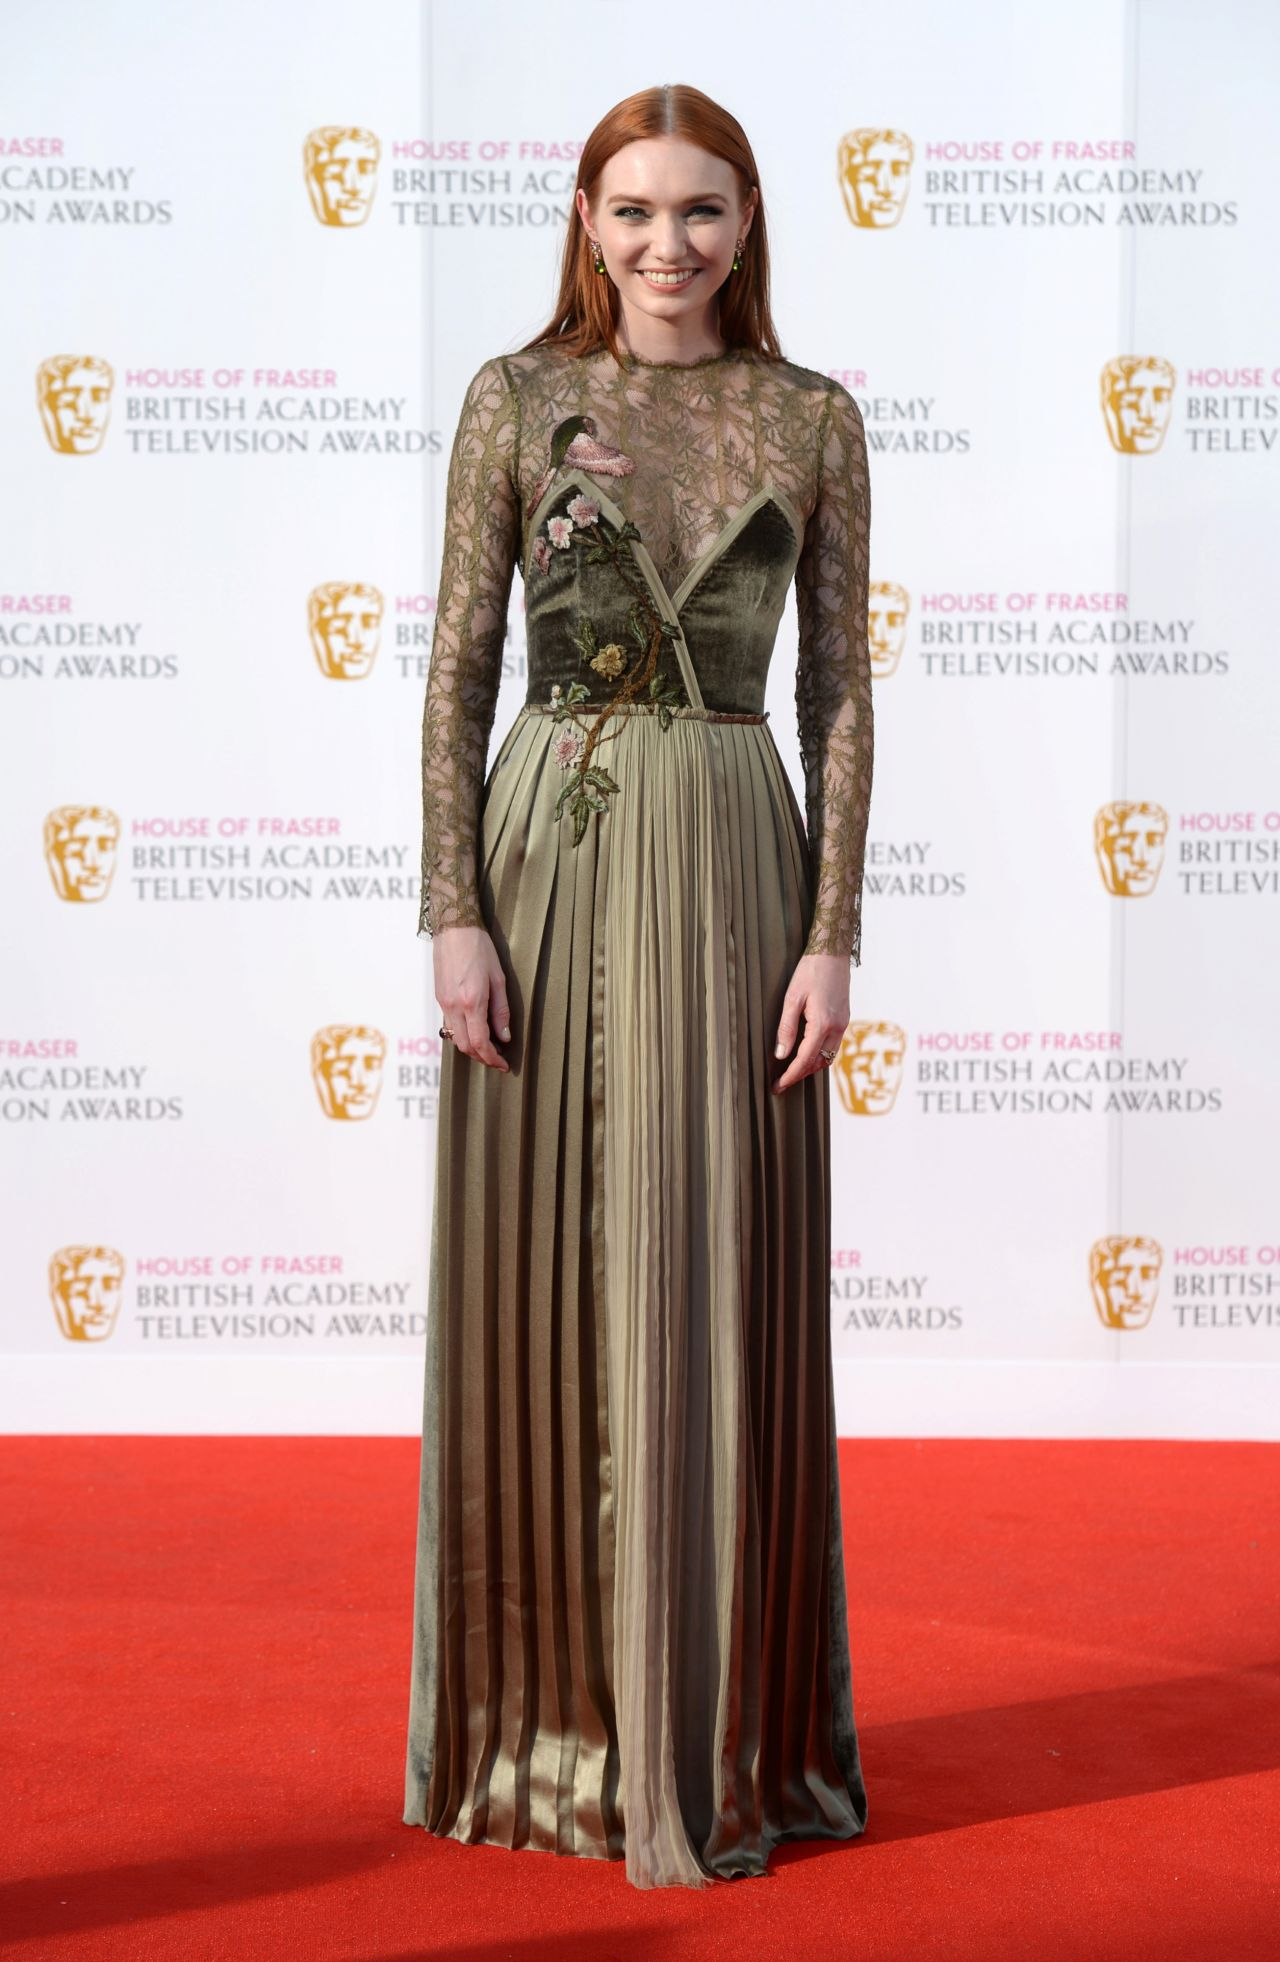 http://celebmafia.com/wp-content/uploads/2016/05/eleanor-tomlinson-british-academy-television-awards-baftas-2016-in-london-14.jpg